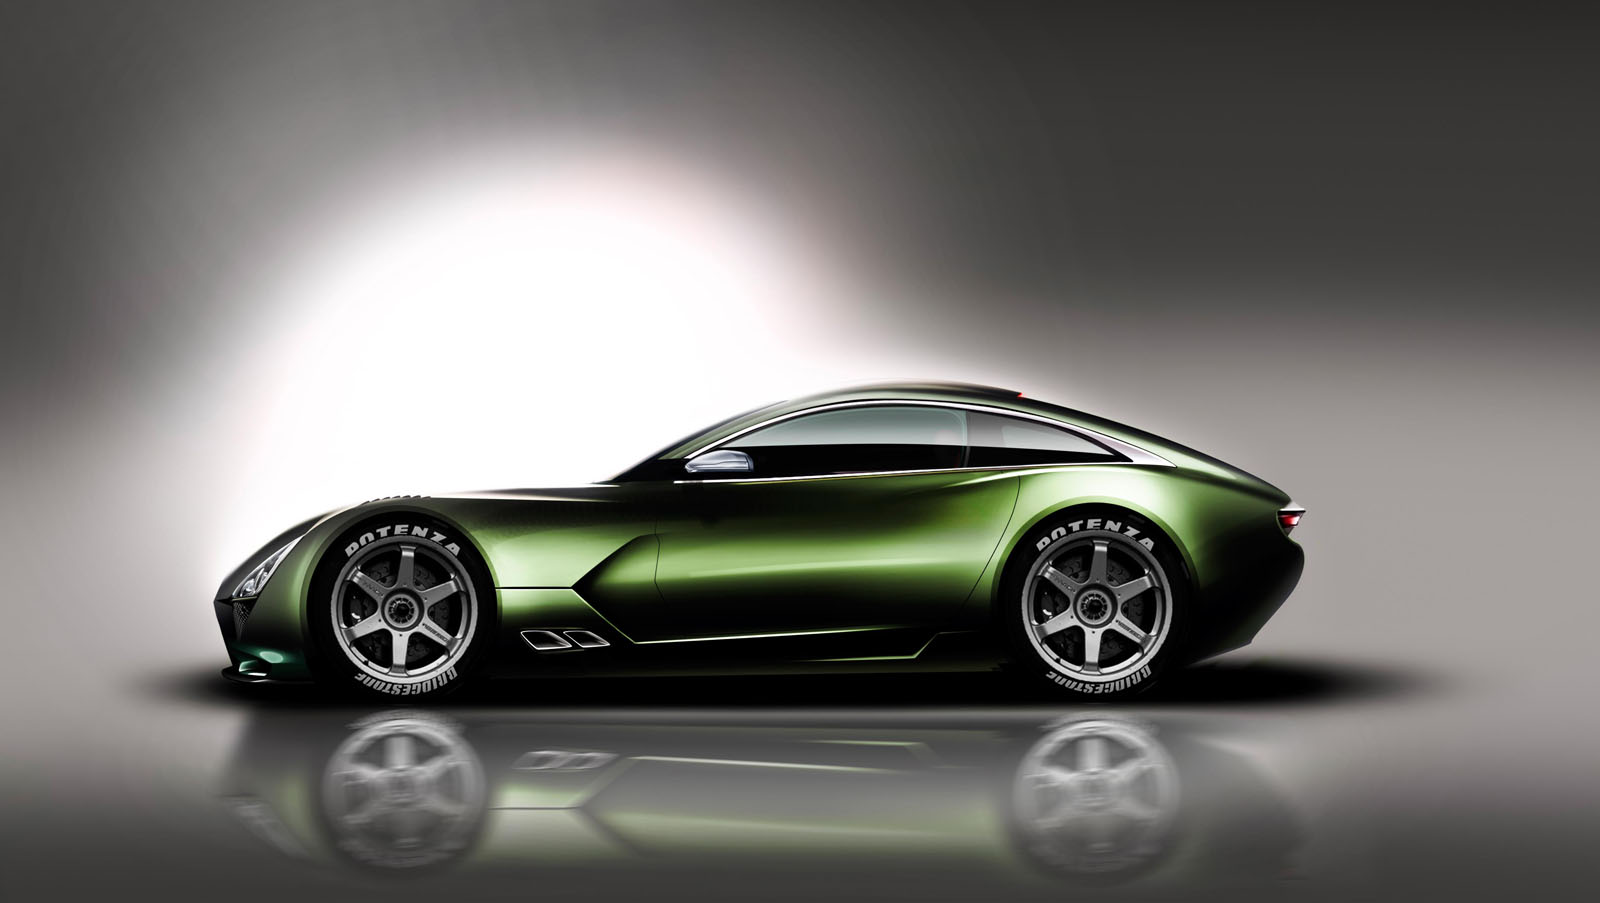 new tvr set to revive a 70 year tradition of driver 39 s cars. Black Bedroom Furniture Sets. Home Design Ideas